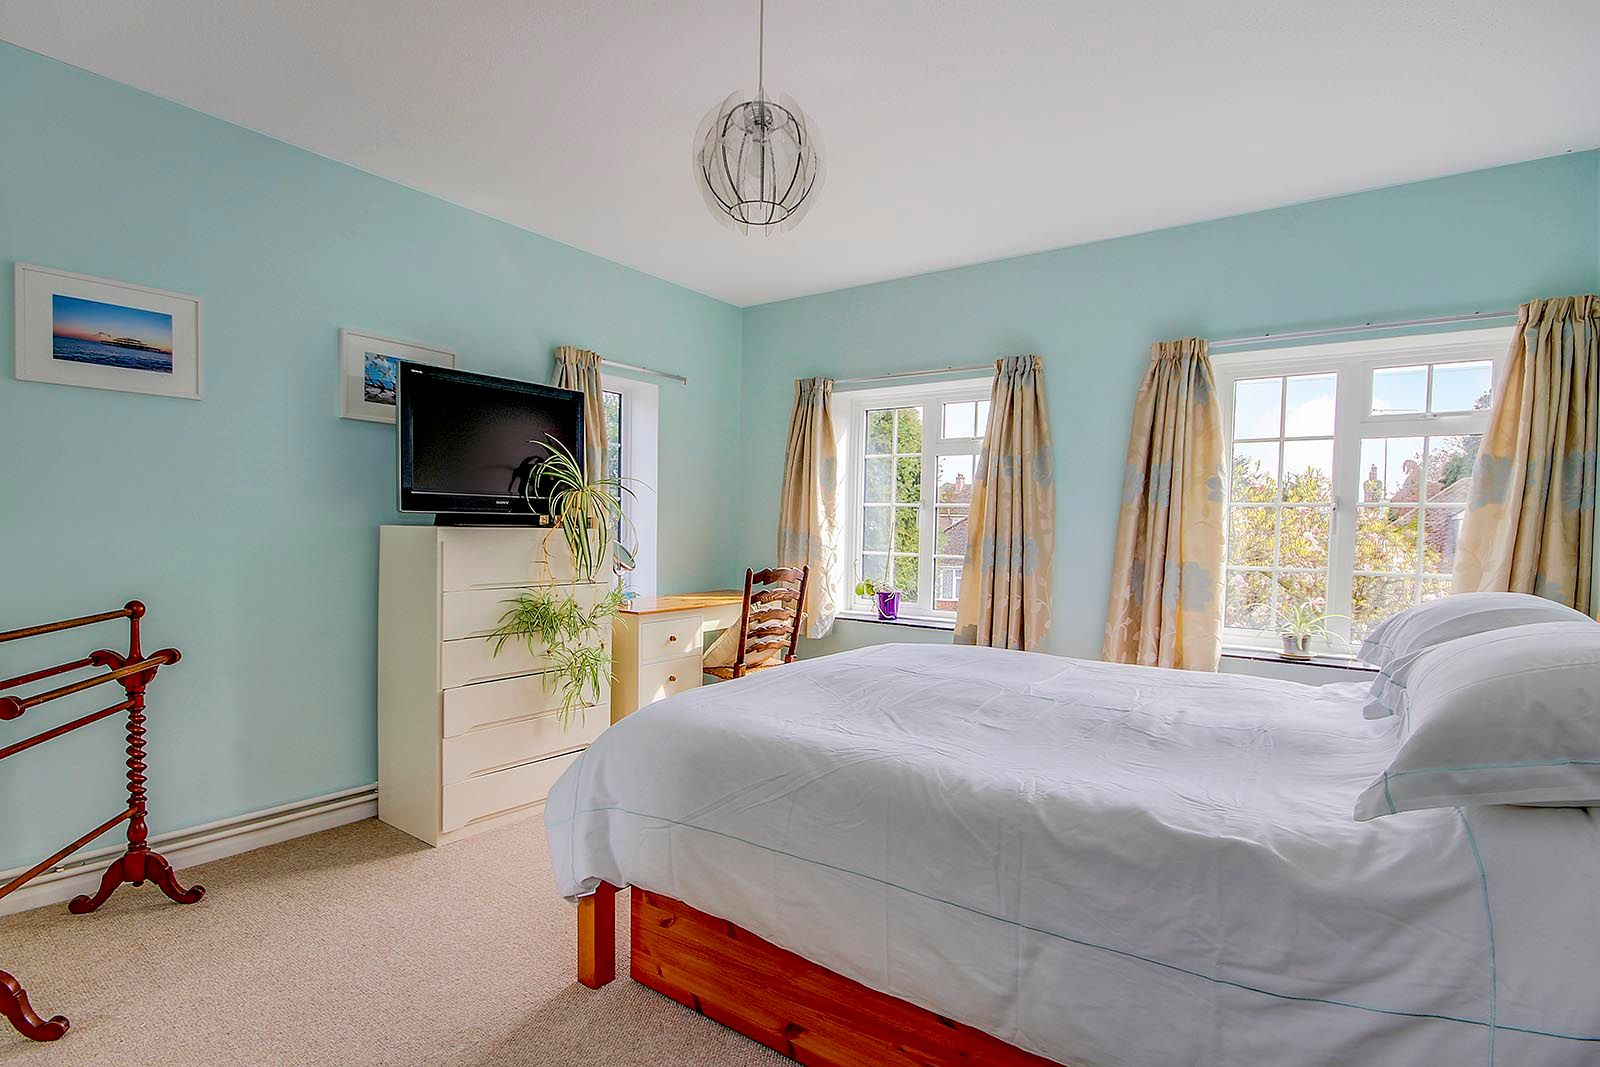 4 bed house for sale in Mill Road (COMP AUG 19) 22